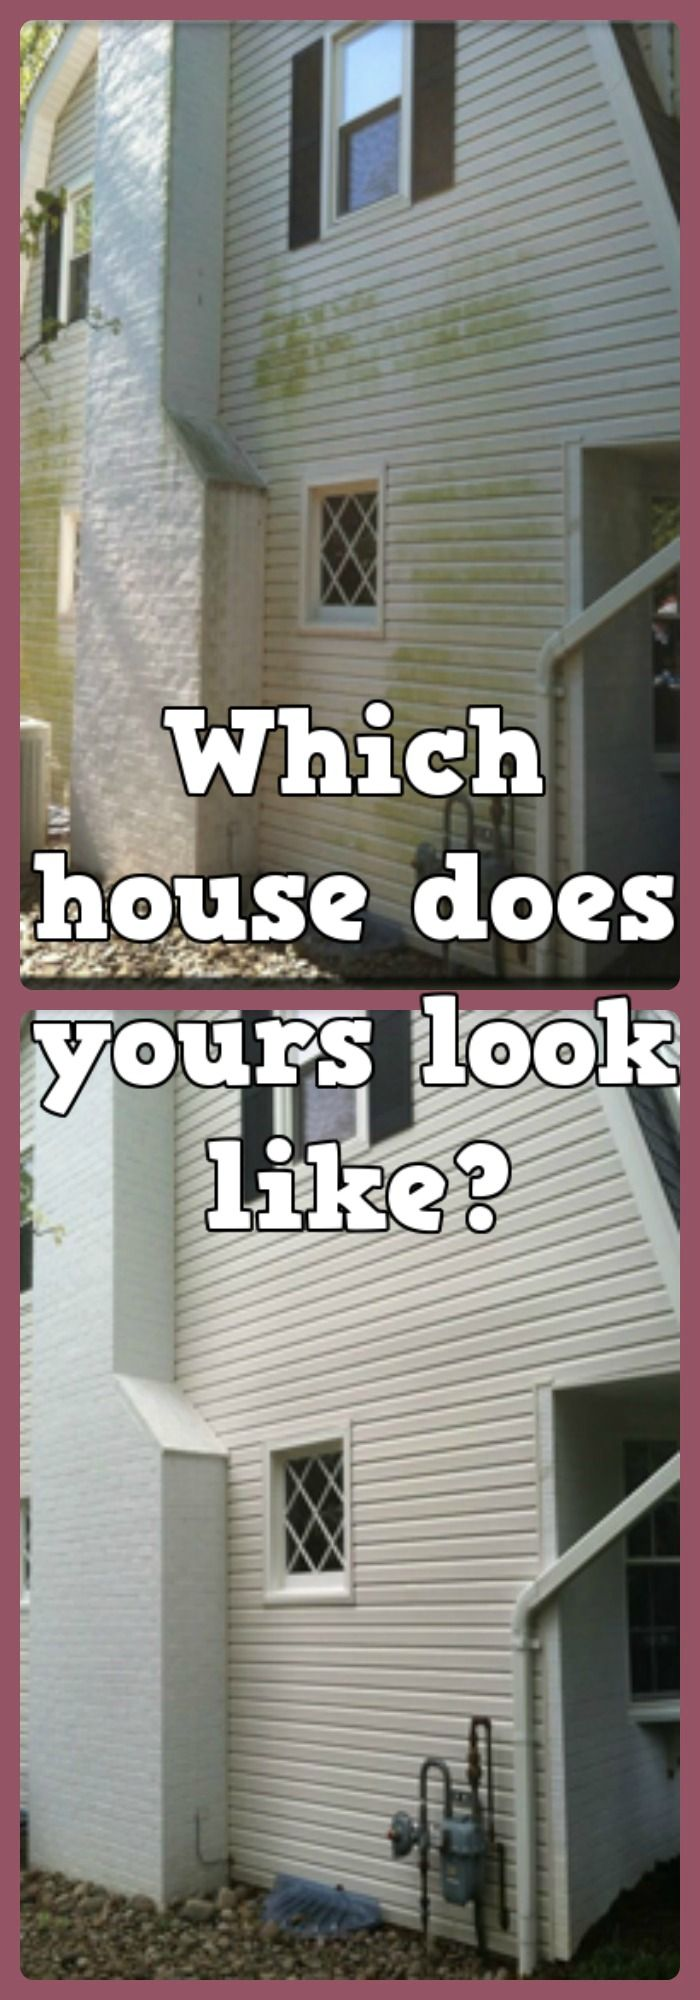 9 best Tampa Exterior House Washing images on Pinterest | Cleaning ...